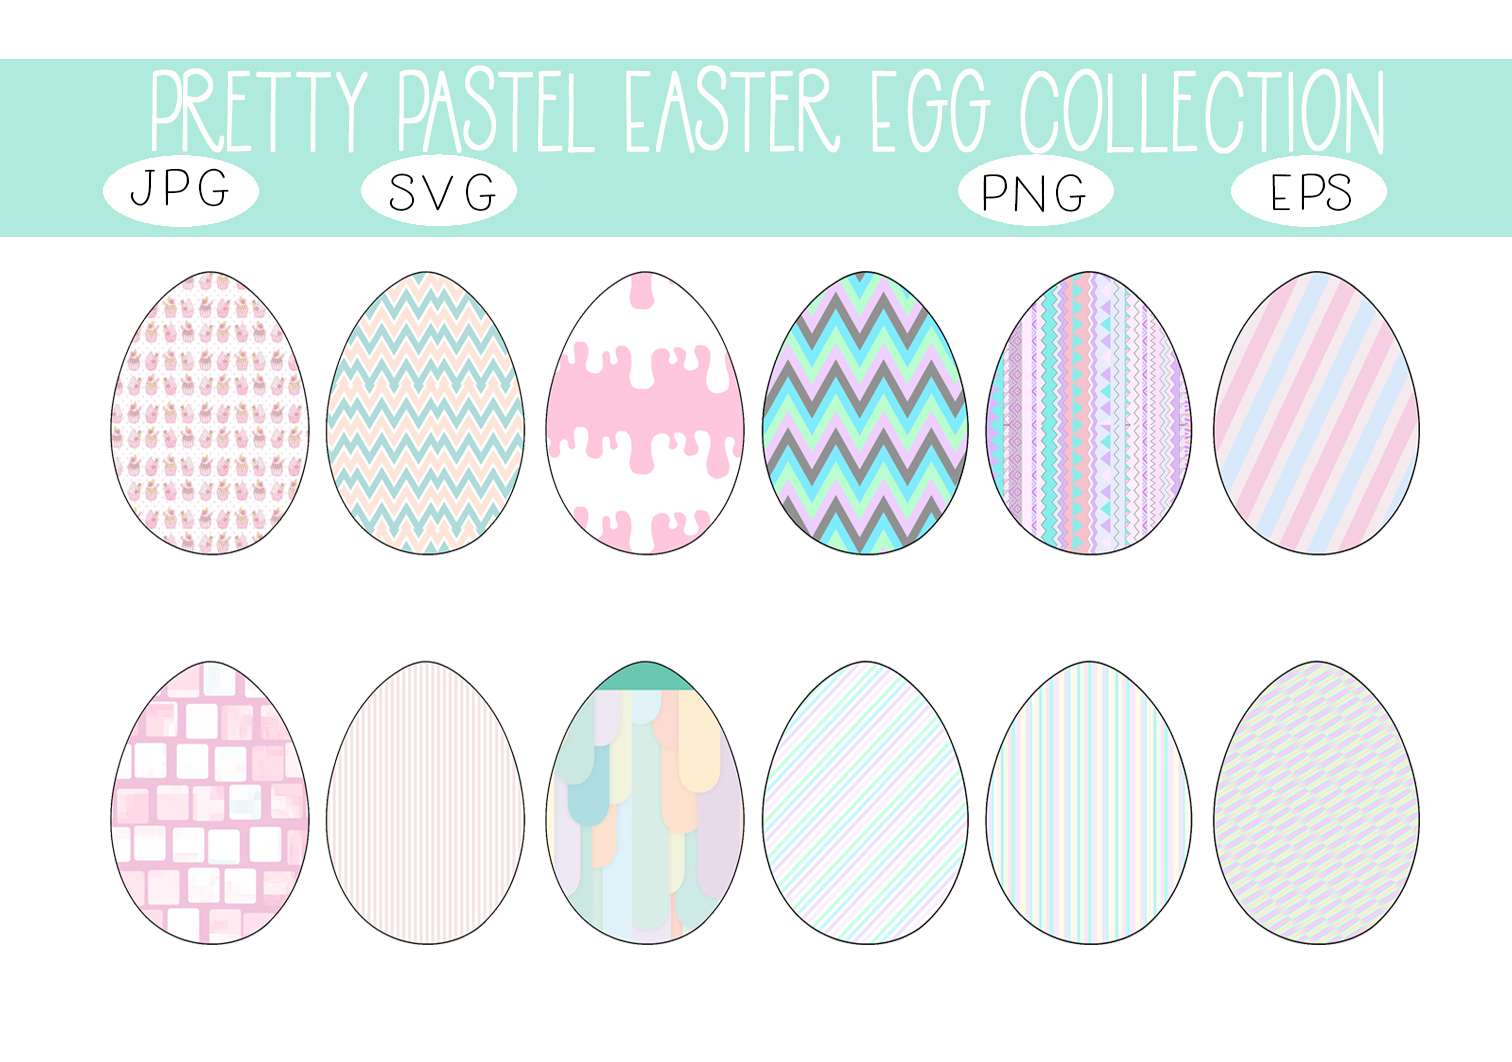 Download Free Pretty Pastel Easter Egg Collection Graphic By Capeairforce for Cricut Explore, Silhouette and other cutting machines.